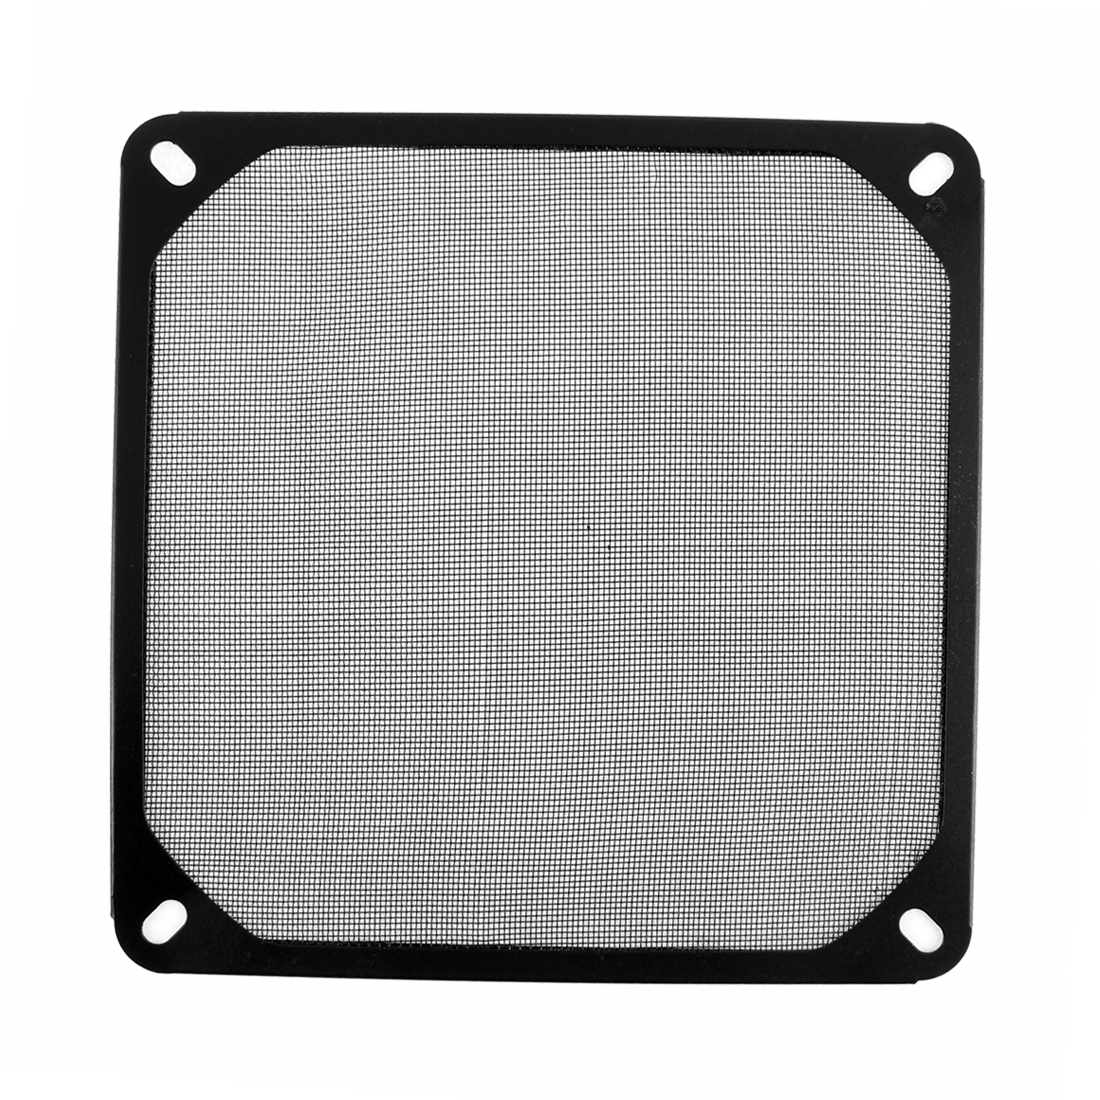 140mm x 140mm Computer PC Dustproof Cooler Fan Case Cover Dust Filter Mesh Black